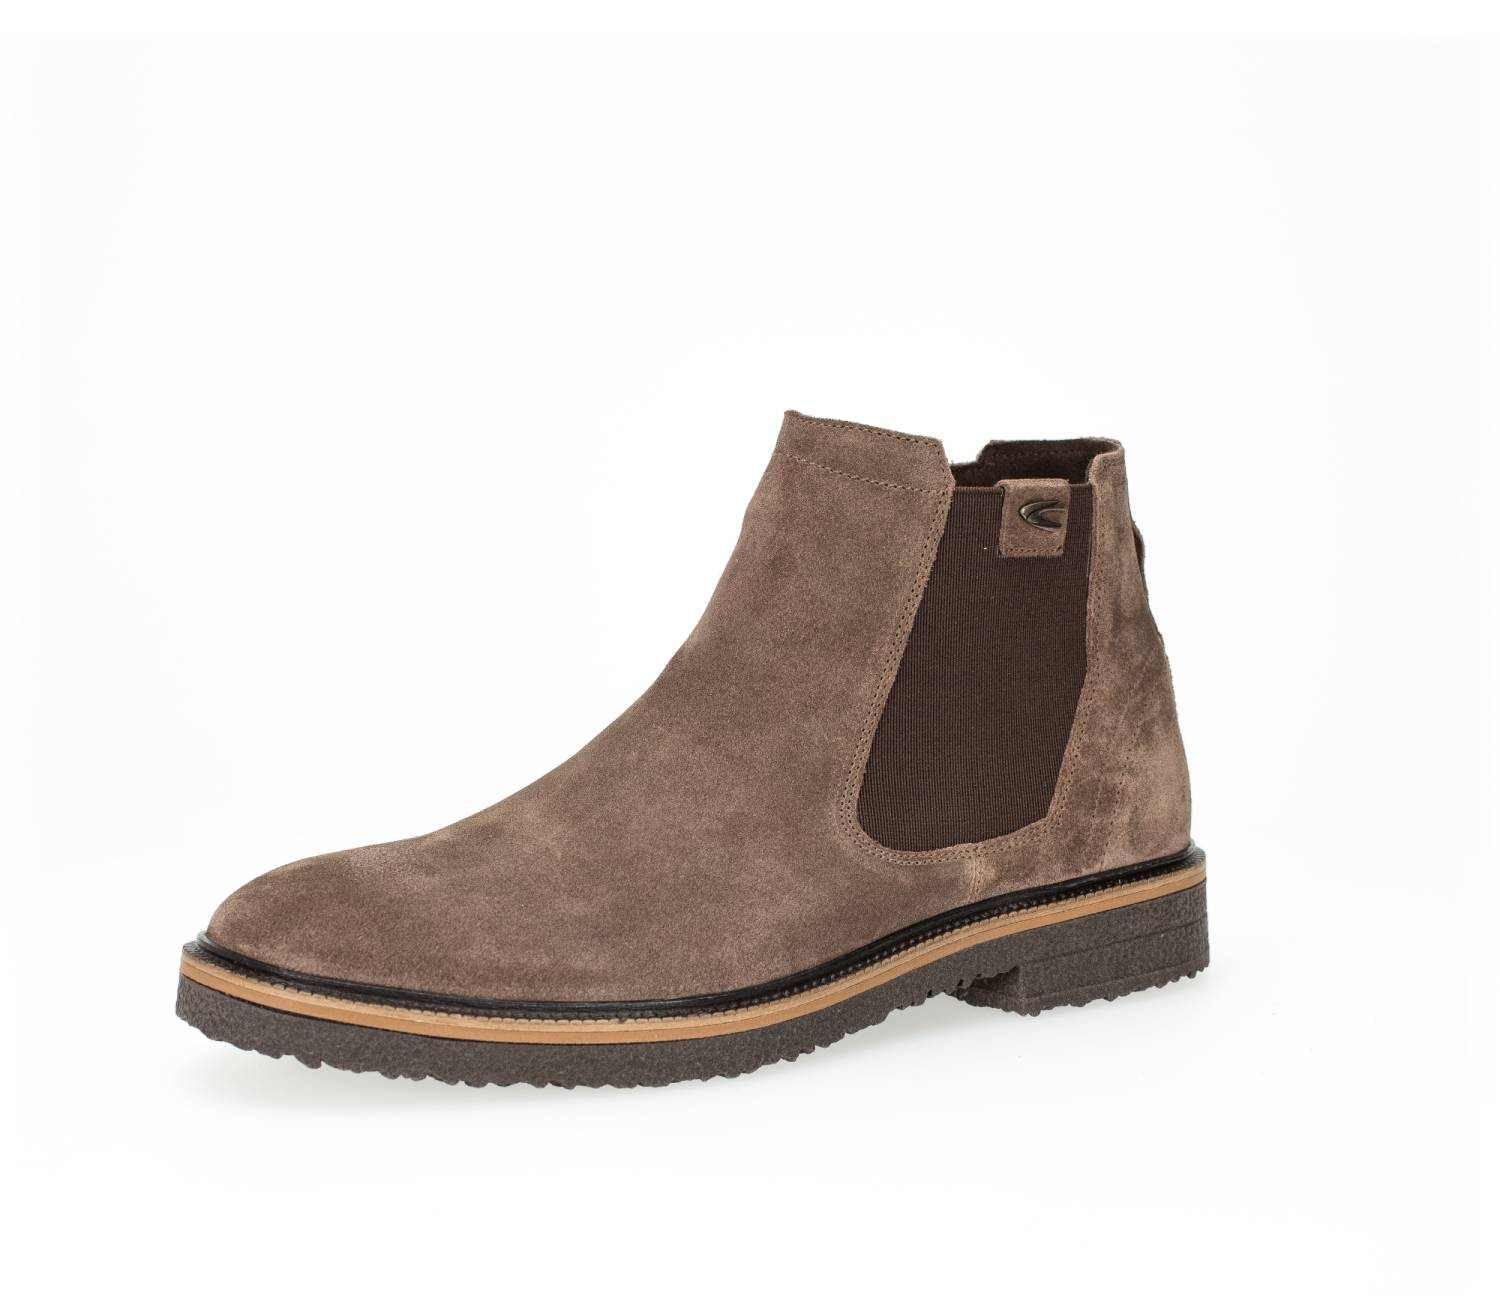 Camel Active Trade 13 taupe taupe Schuhe Stiefelette Boots Herren